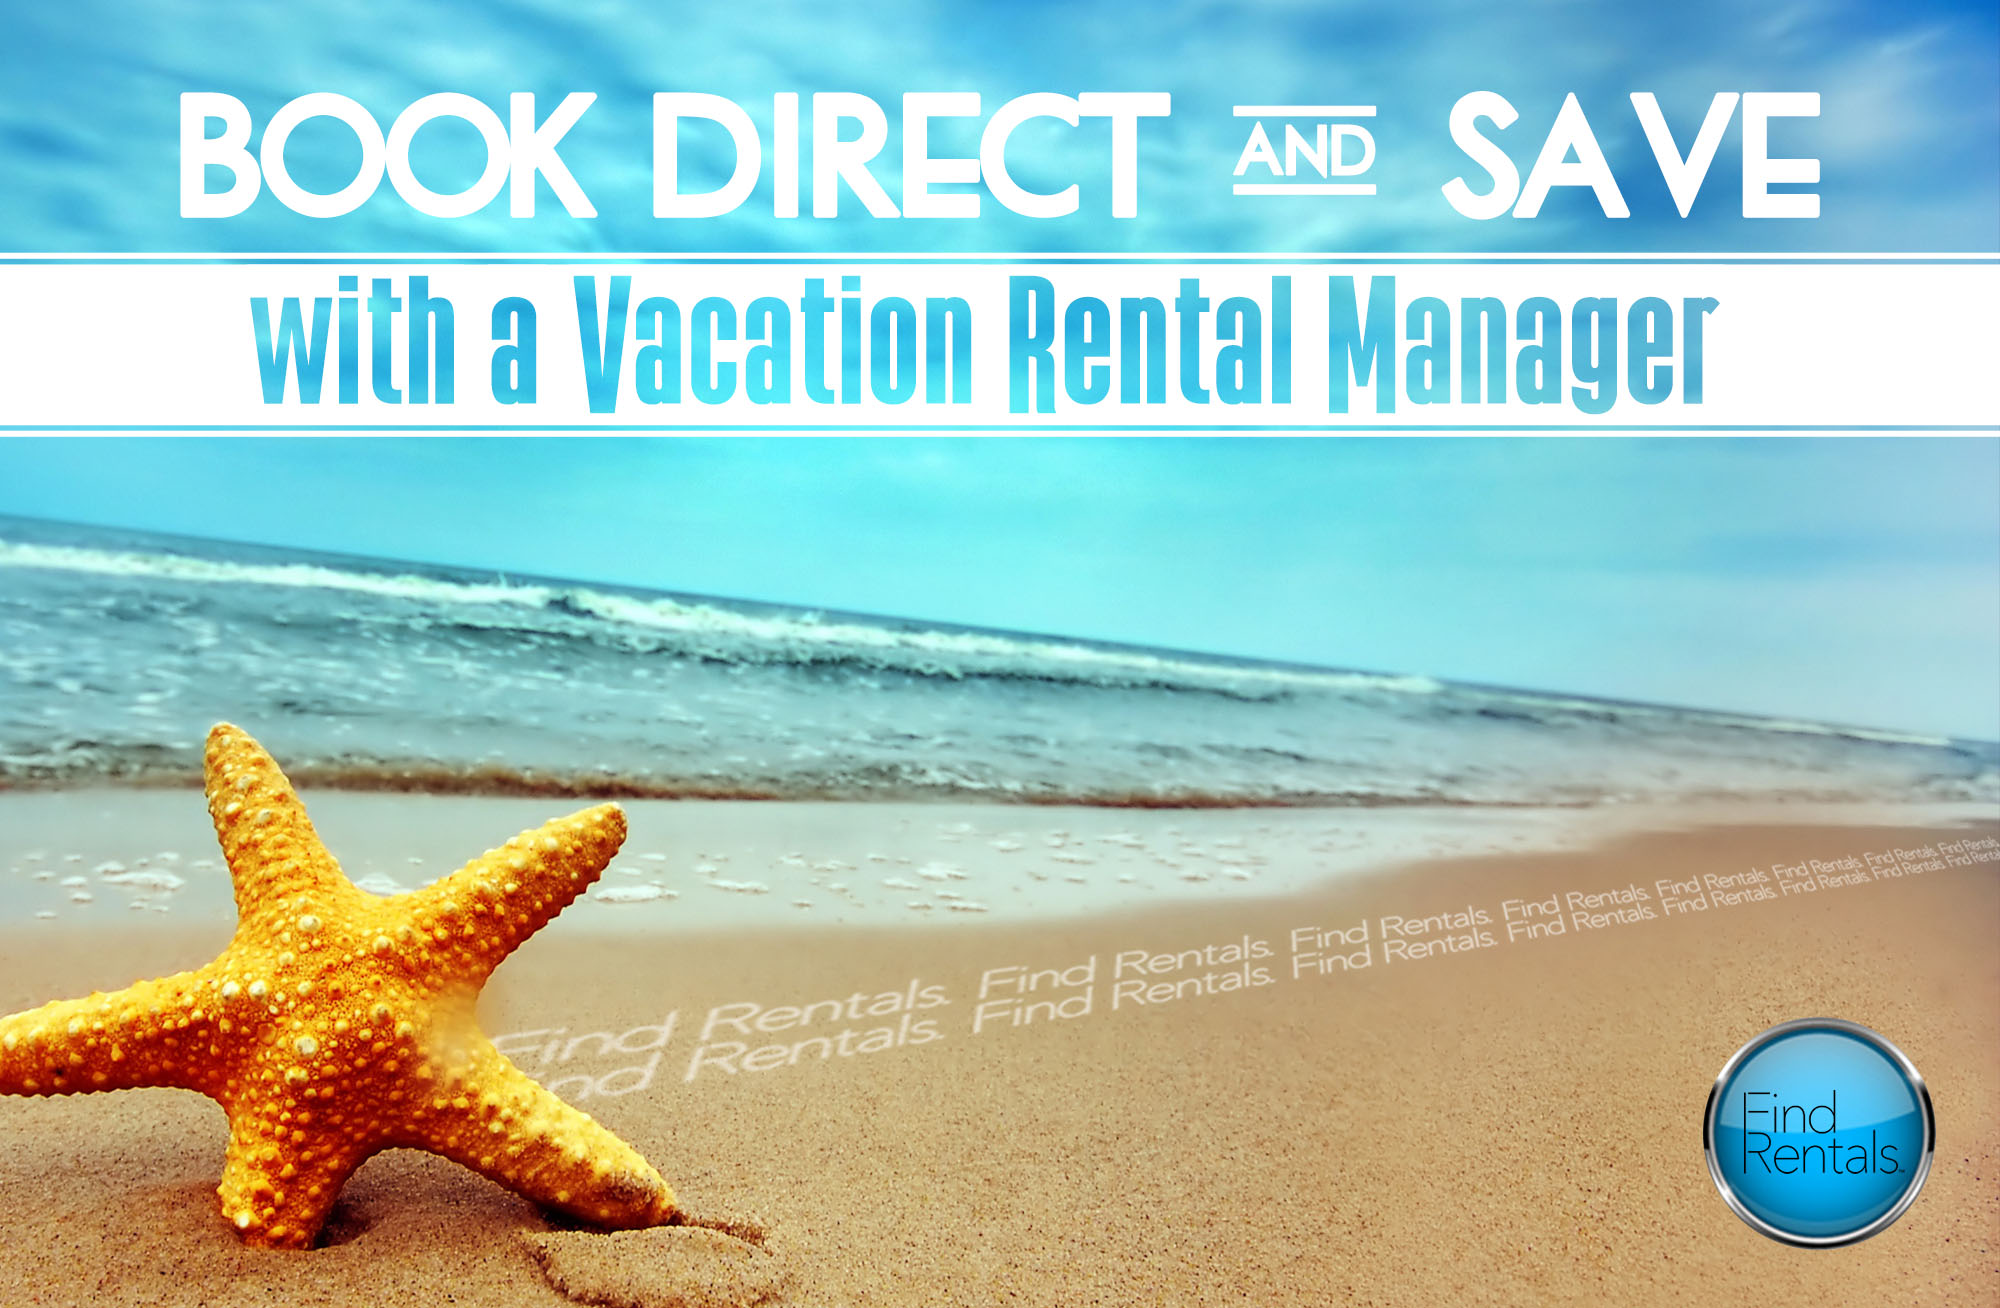 Book Direct and Save with a Vacation Rental Manager